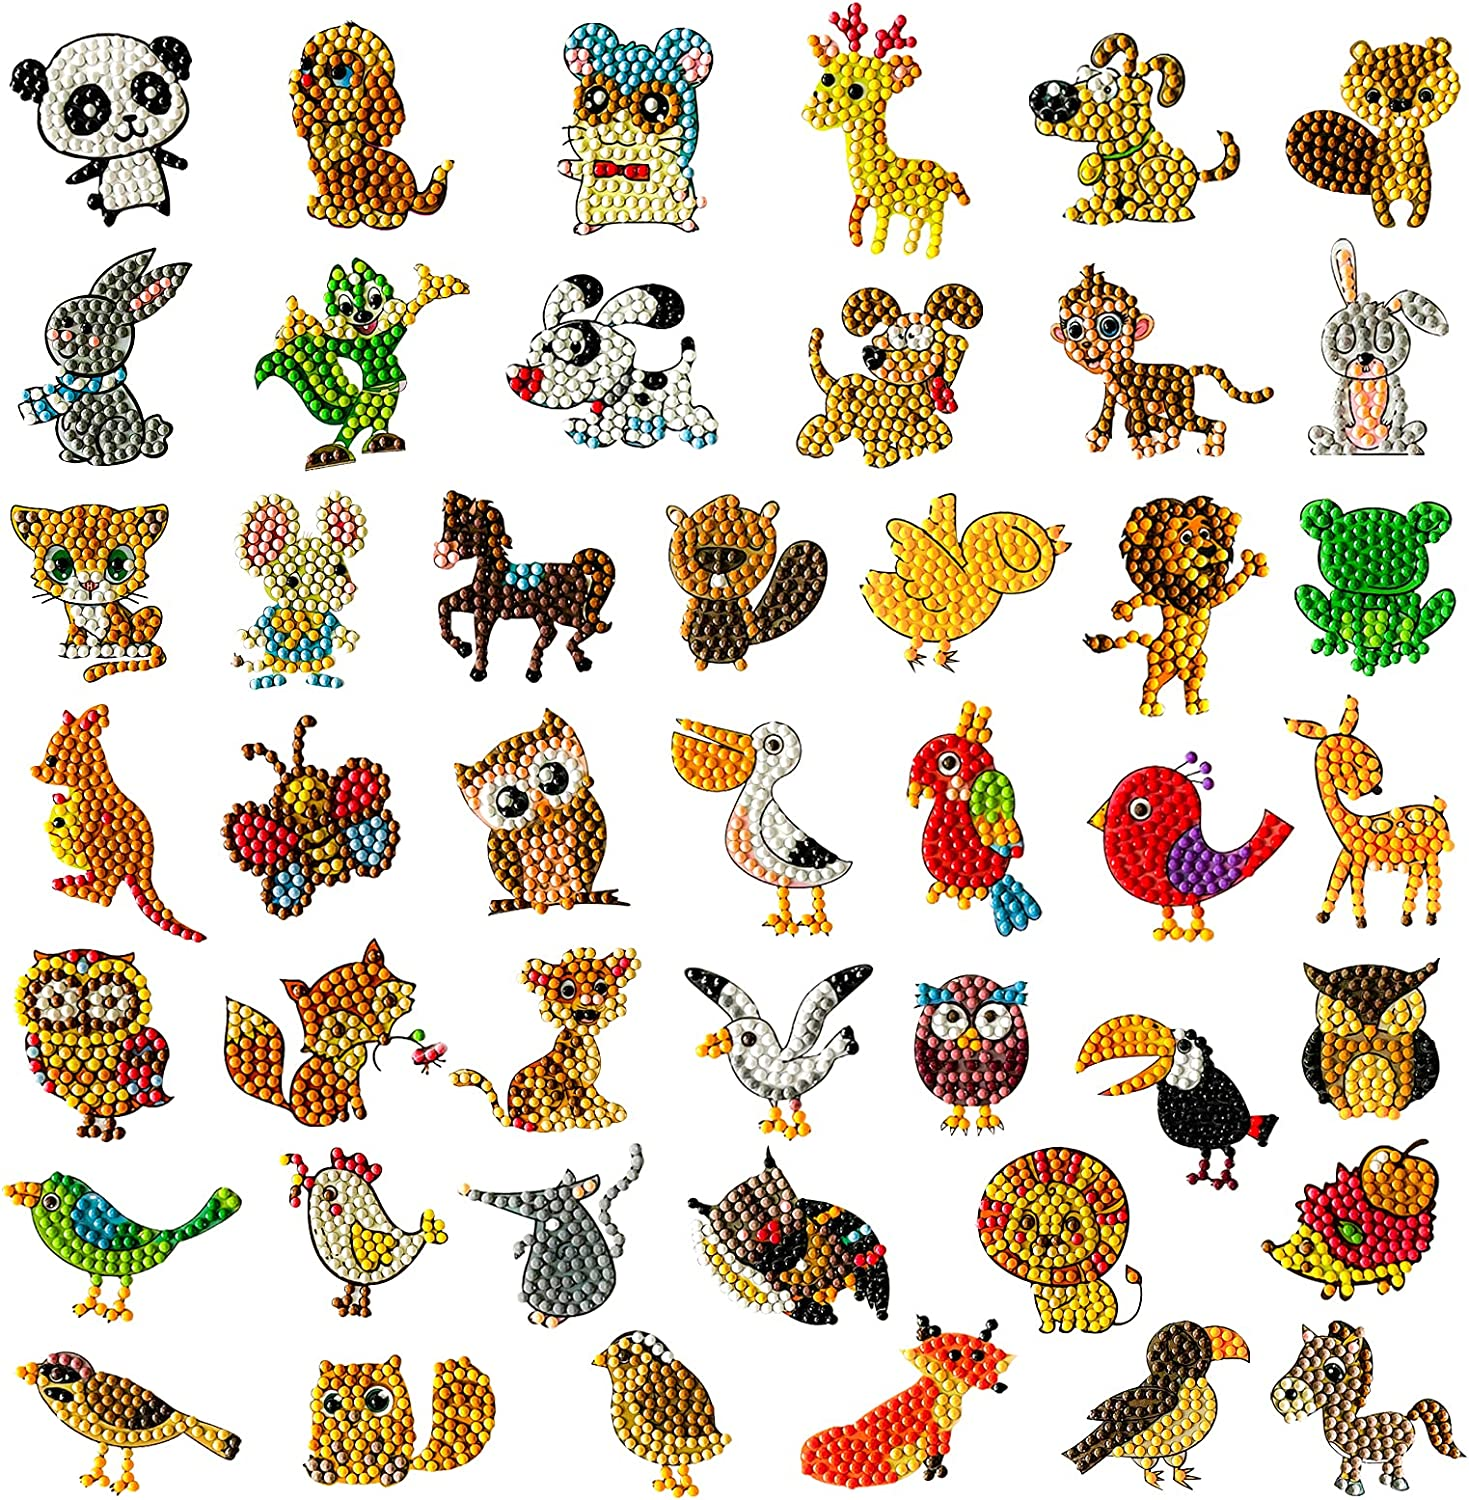 45Pcs 5D Diamond Painting Stickers FODIENS Creati for Kids Limited time cheap sale Max 70% OFF Kits